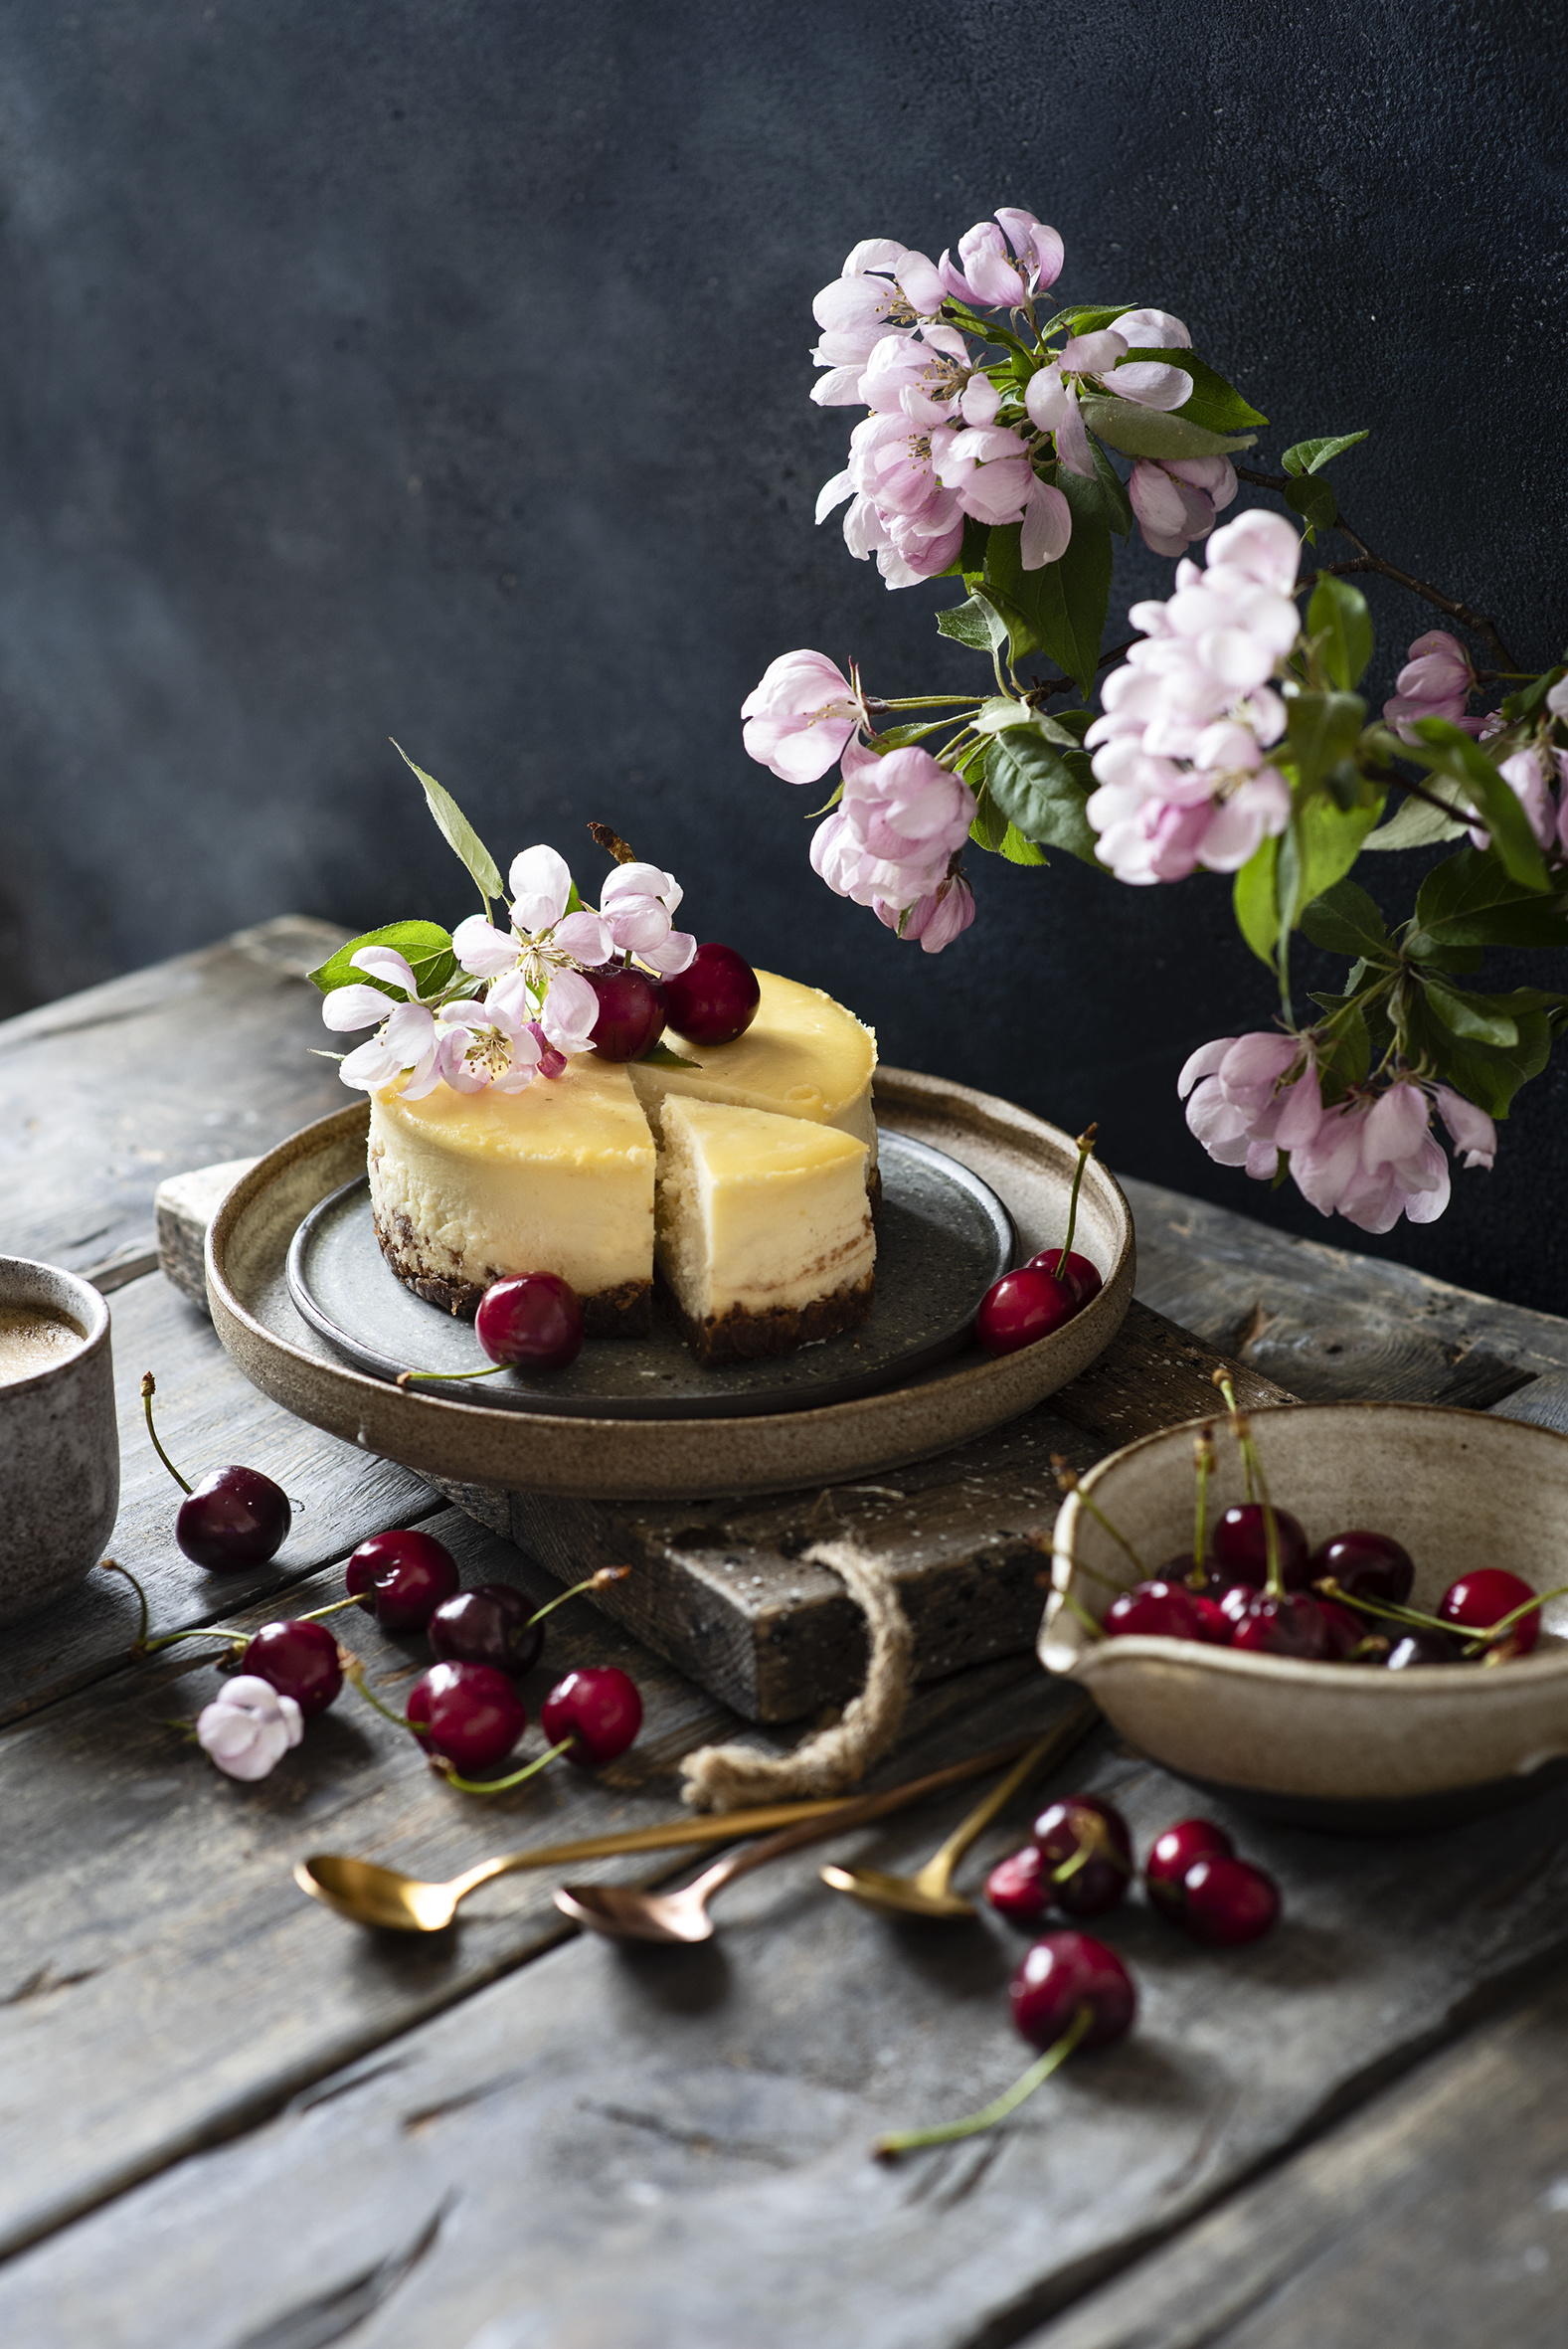 Photos Cheesecake Cherry Food Branches boards Flowering trees  for Mobile phone Wood planks